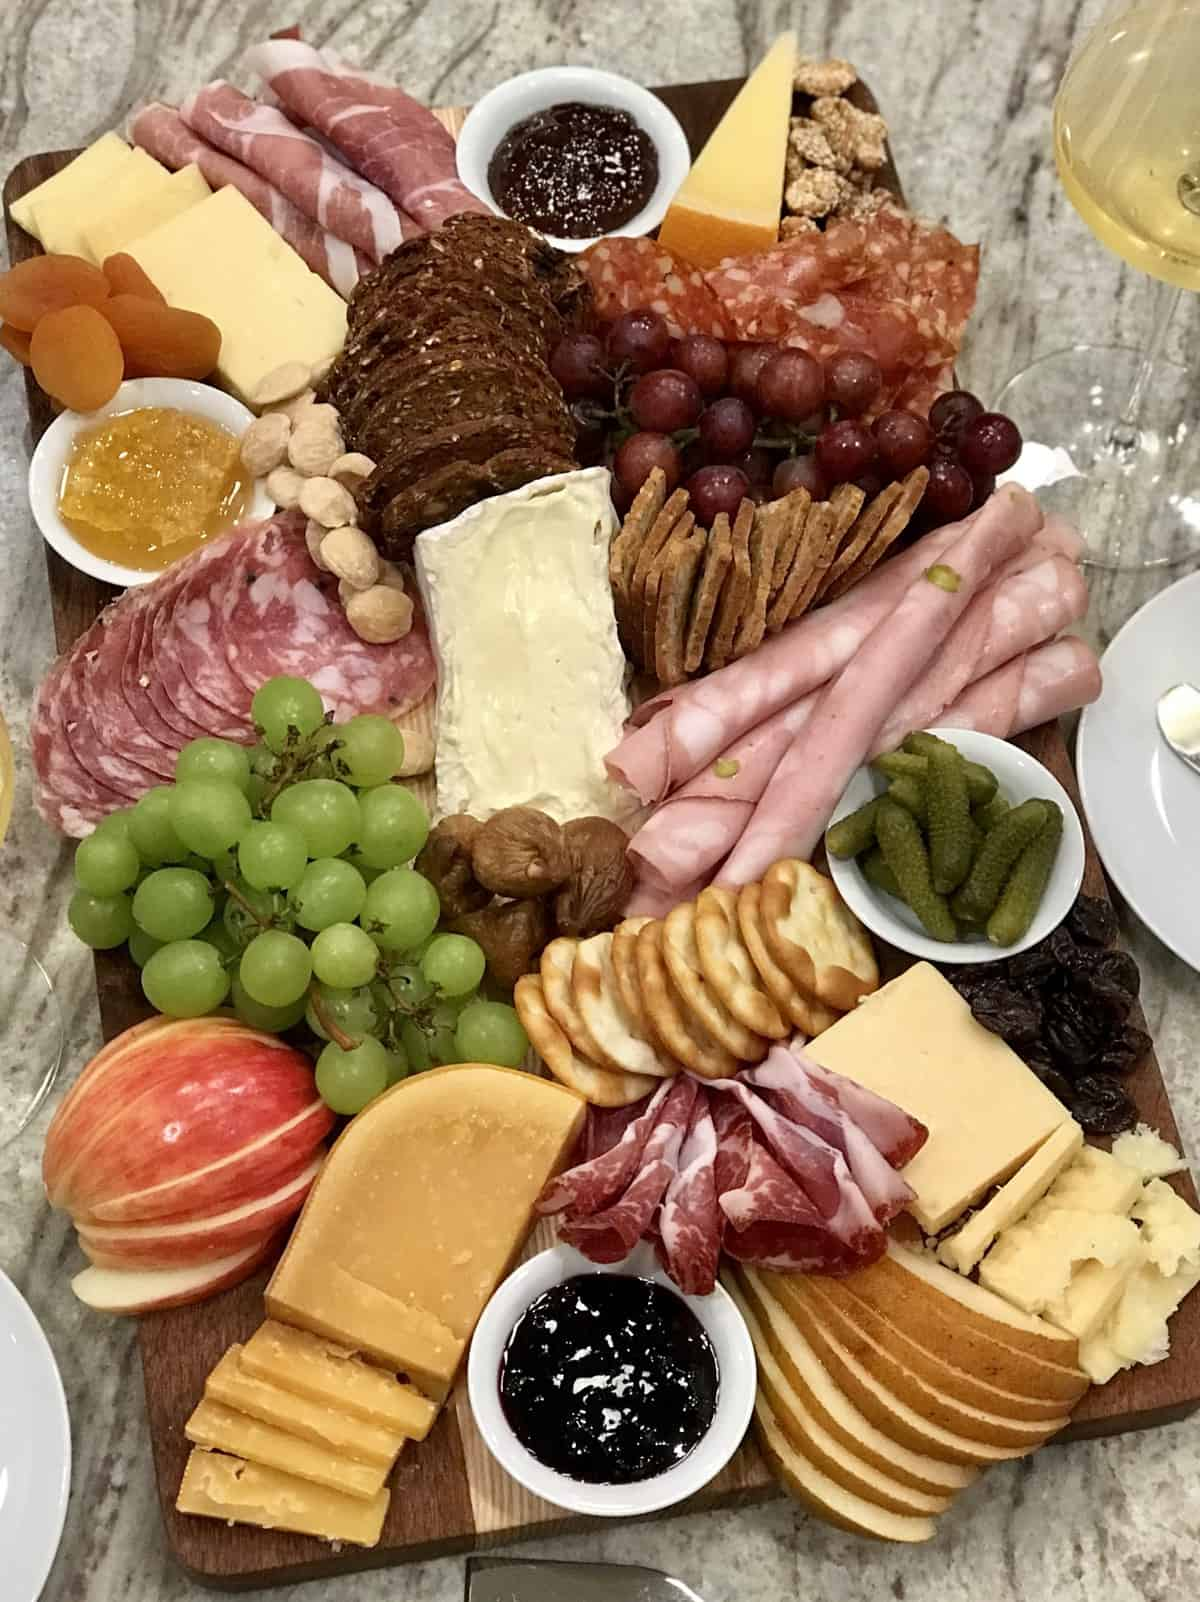 Charcuterie and Cheese Board by The BakerMama